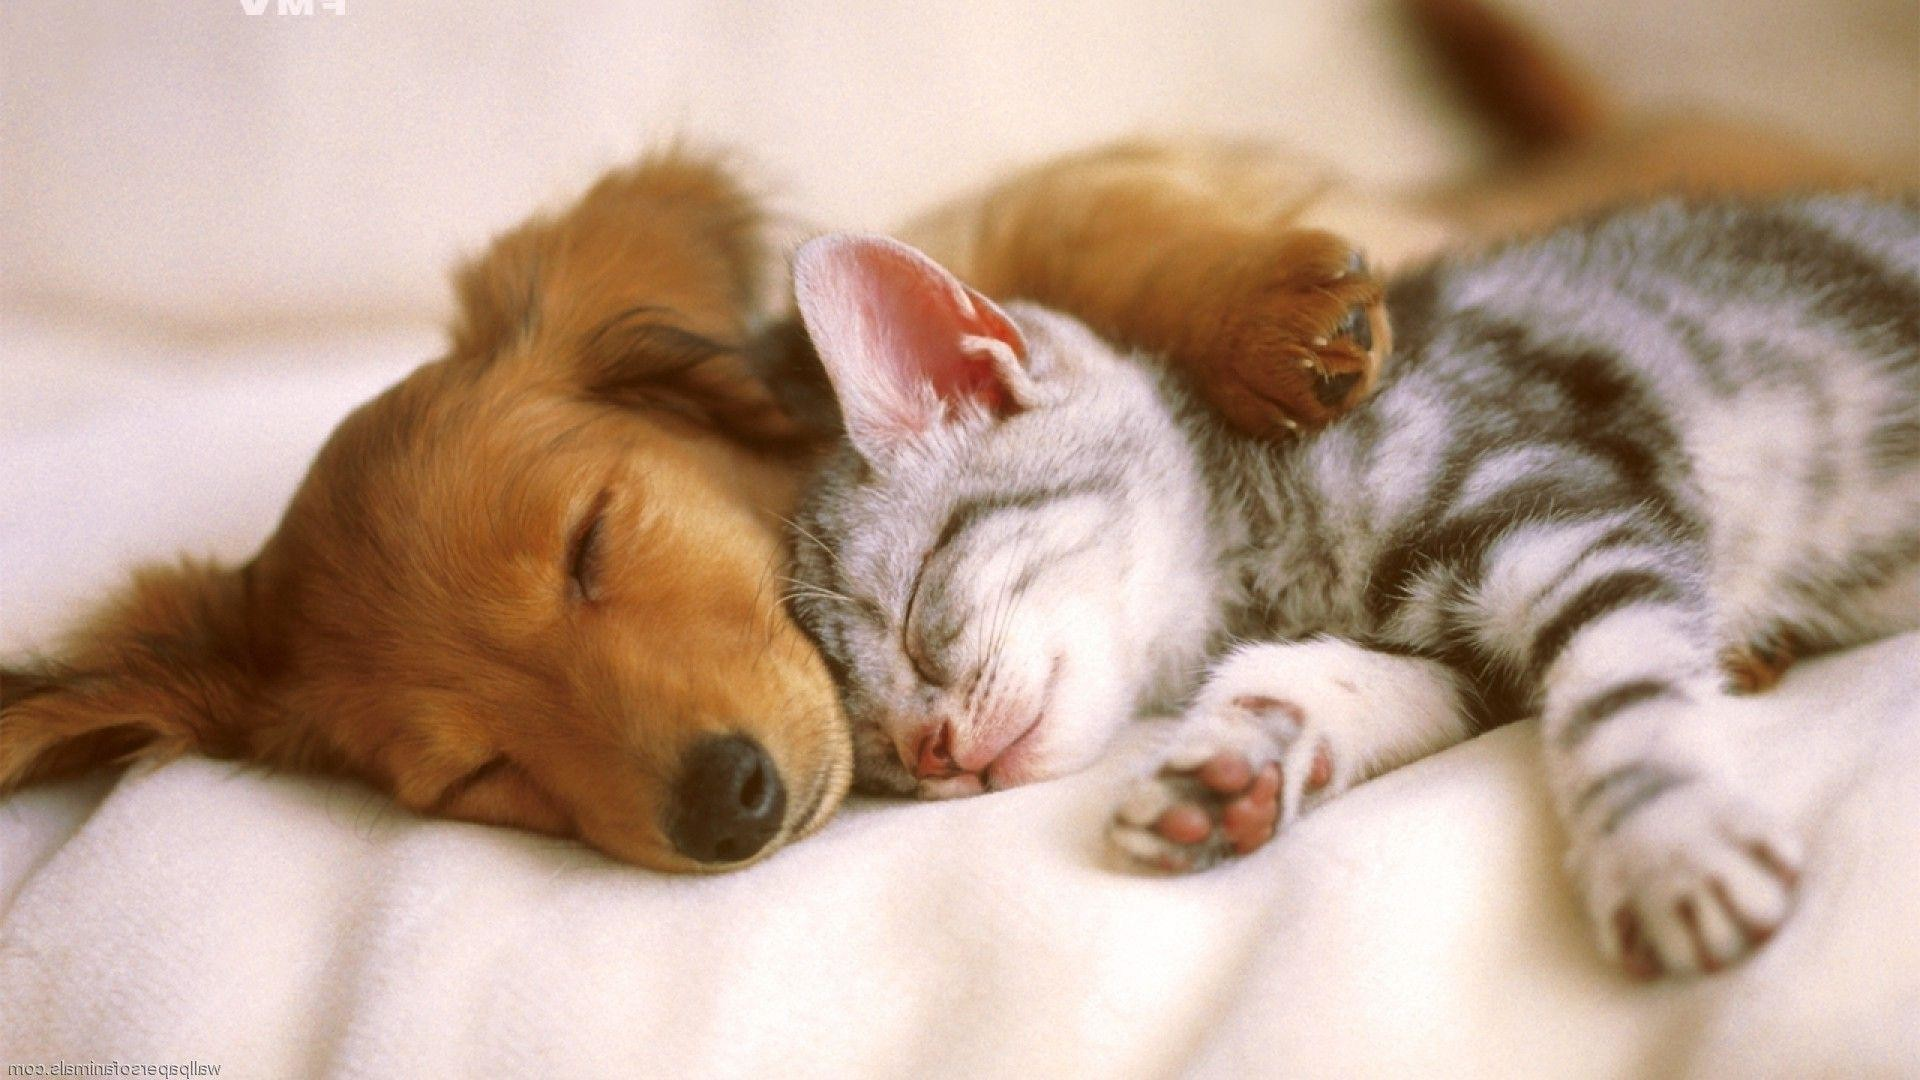 Backgrounds Images Cats And Dogs, Wallpapers, HD Wallpapers .